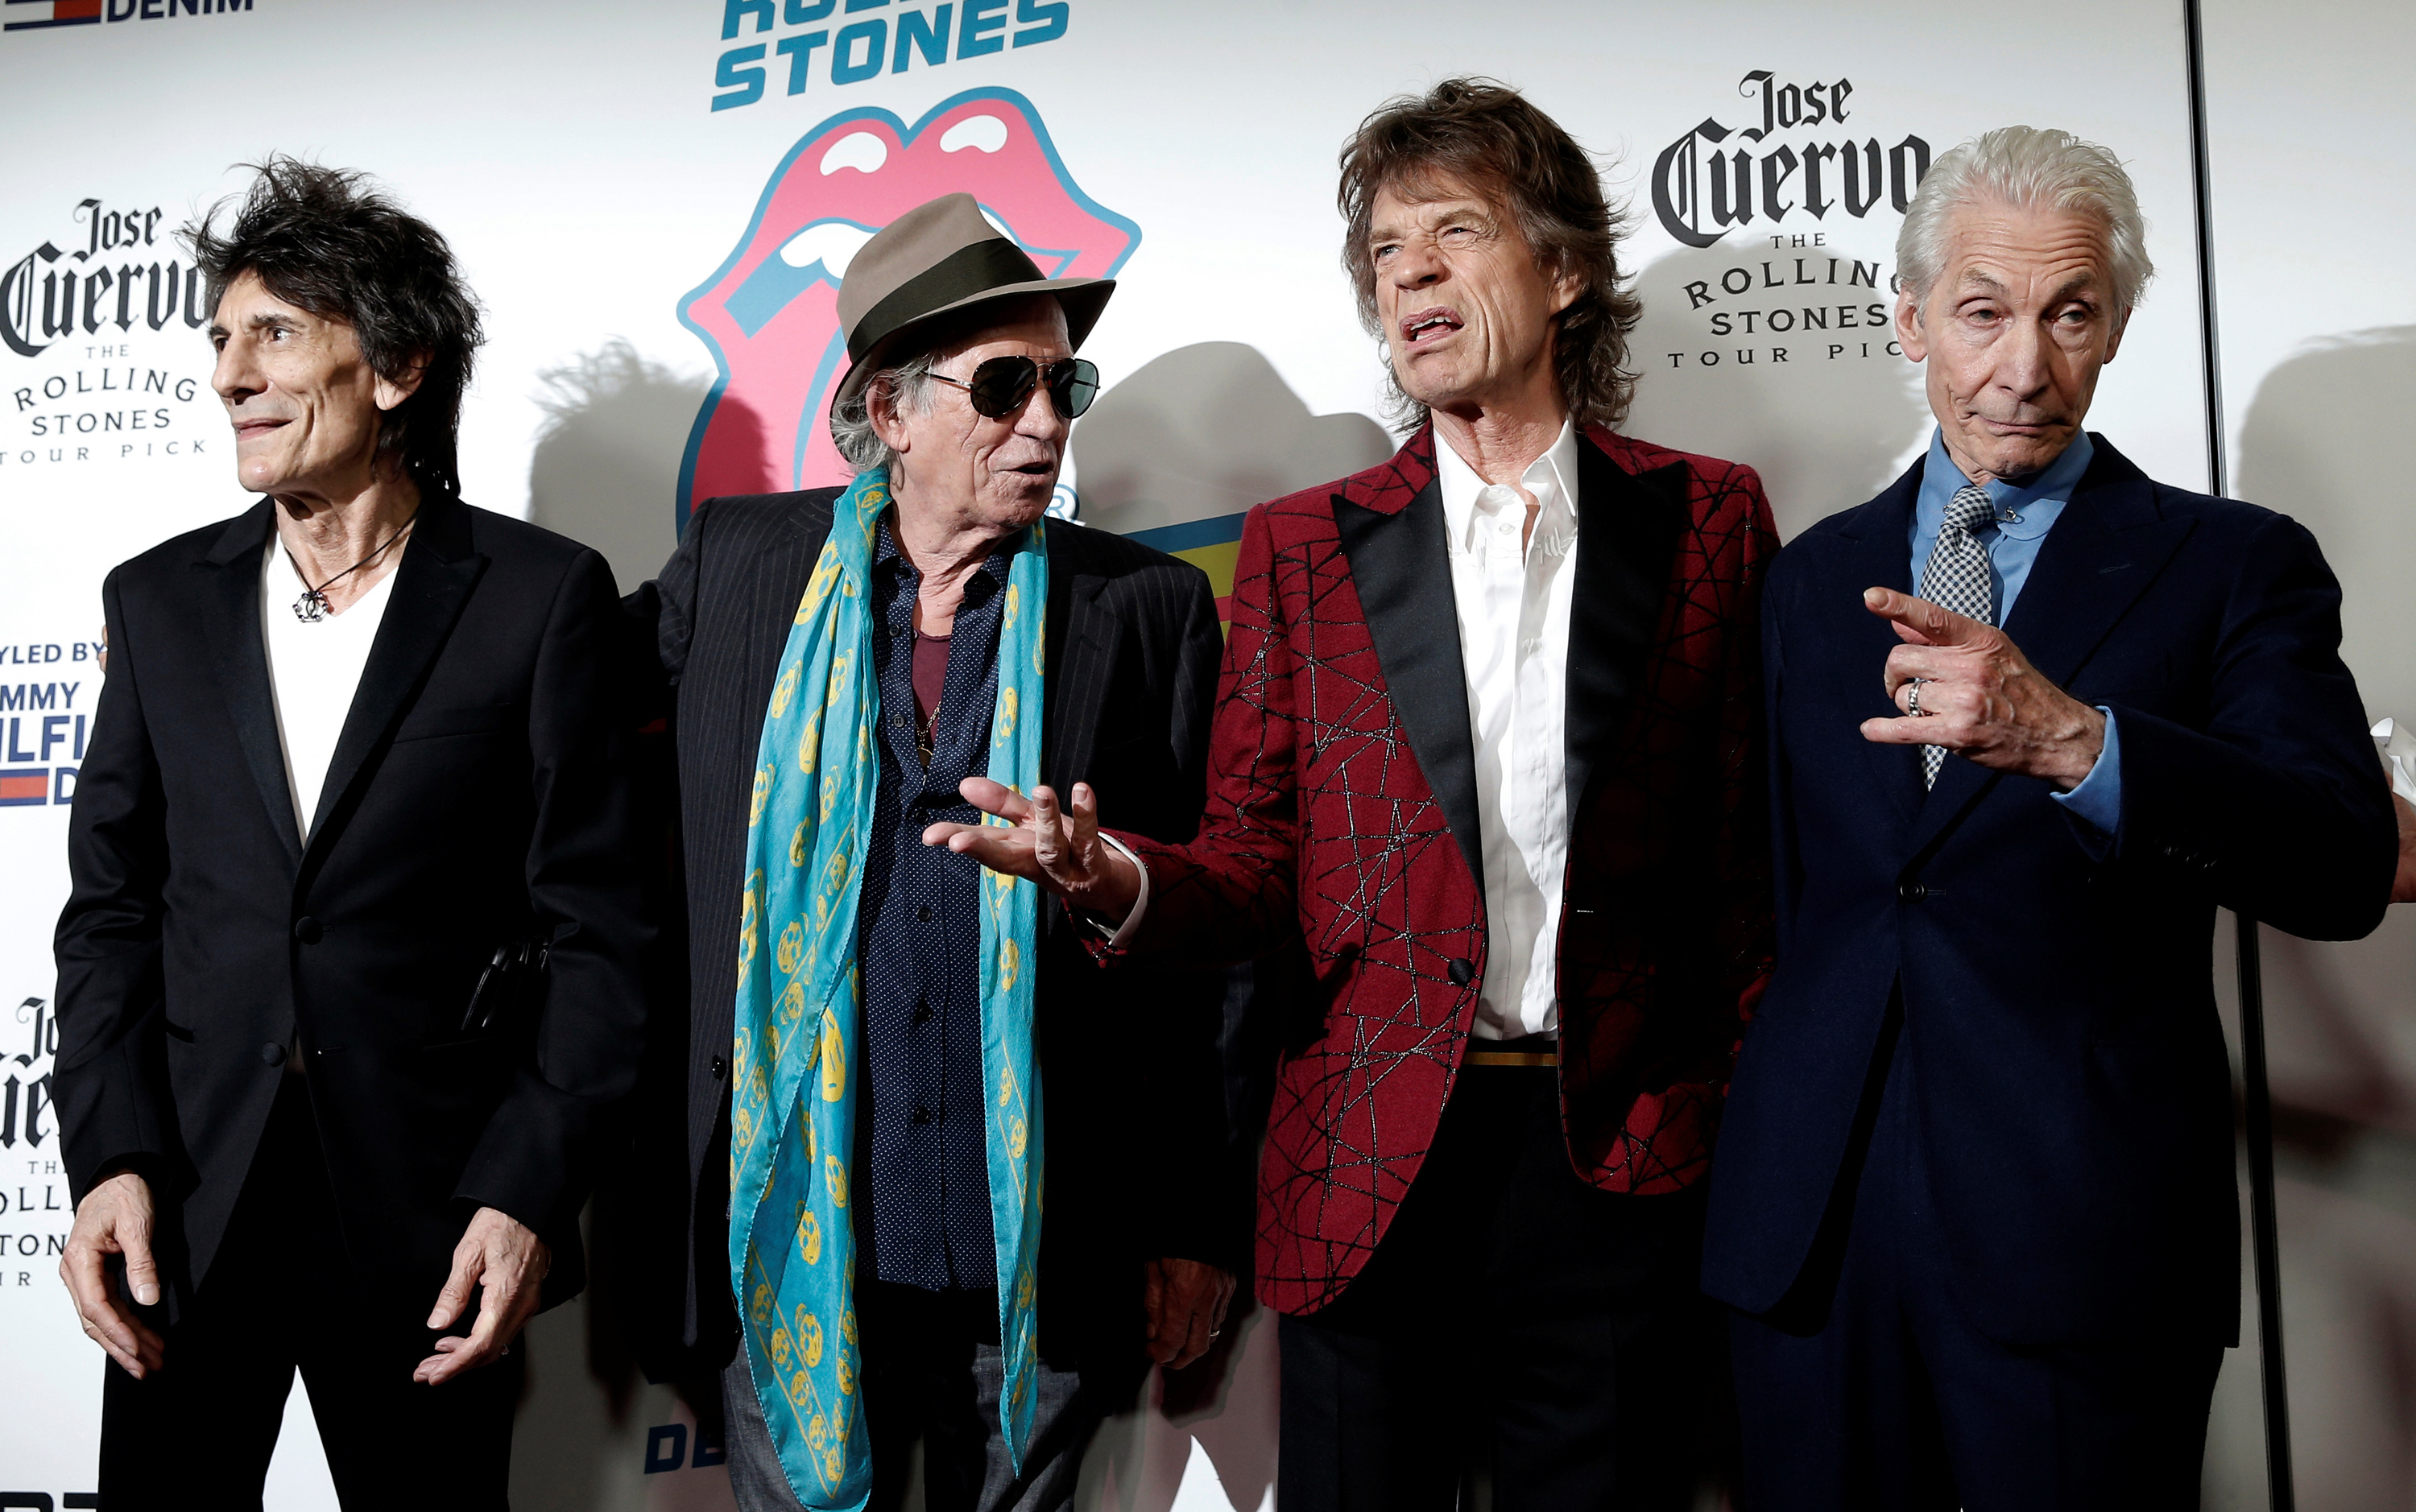 The Rolling Stones (L-R) Ronnie Wood, Keith Richards, Mick Jagger and Charlie Watts pose as they arrive for the opening of the new exhibit